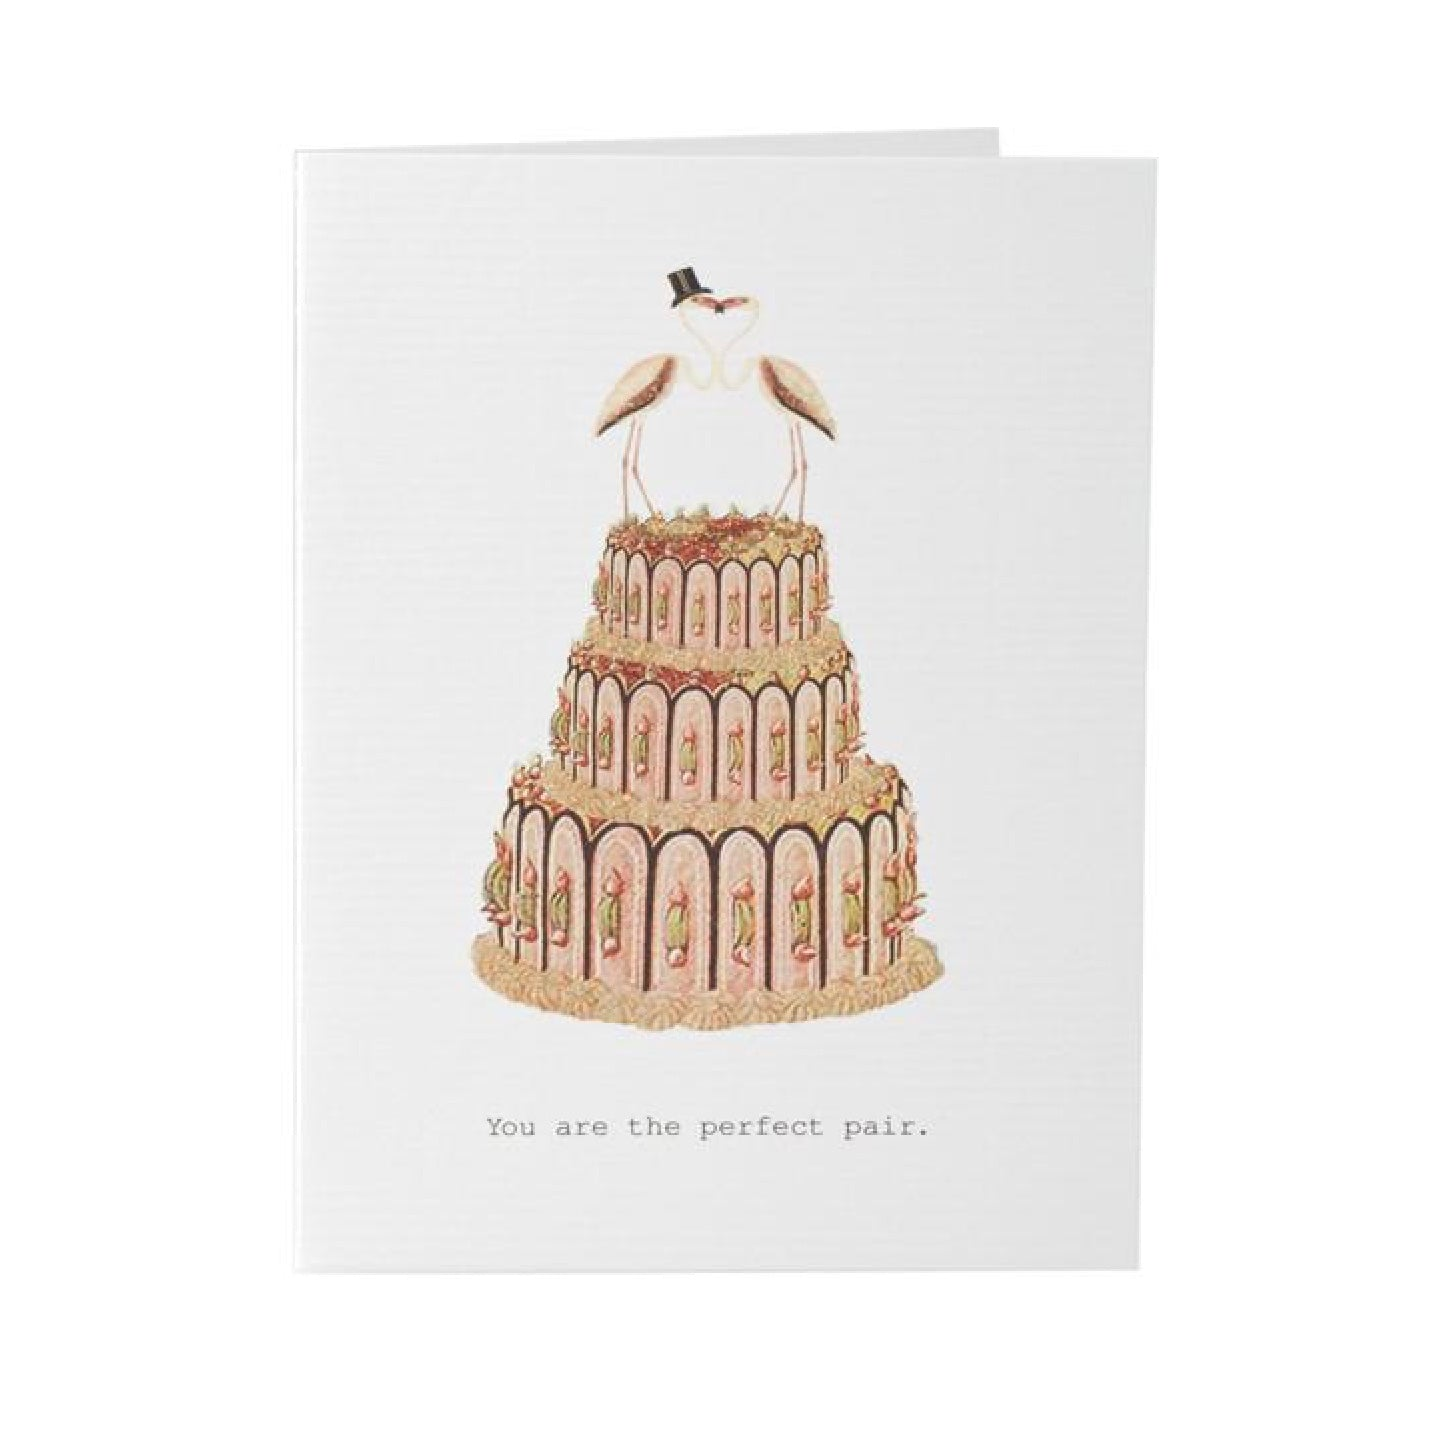 "Tokyo Milk ""You are the perfect pair"" Wedding Cake Card, TM-Tokyo Milk, Putti Fine Furnishings"